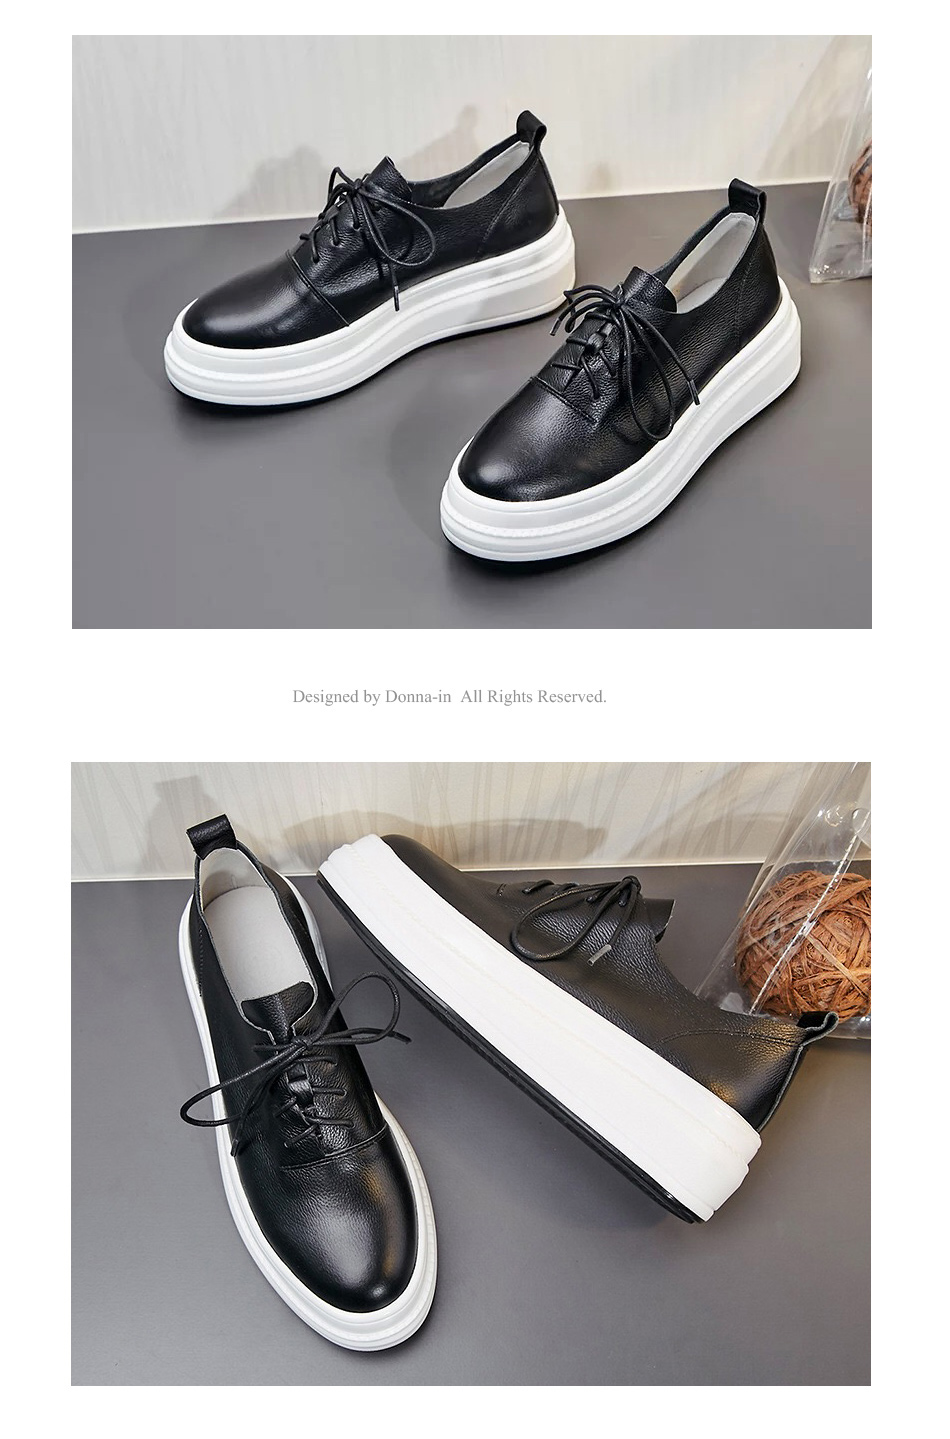 Donna-in Women Flats Shoes Platform Sneakers Shoes Genuine Leather Spring Fashion Sneakers Creepers Lace-up Comfortable Shoes (18)